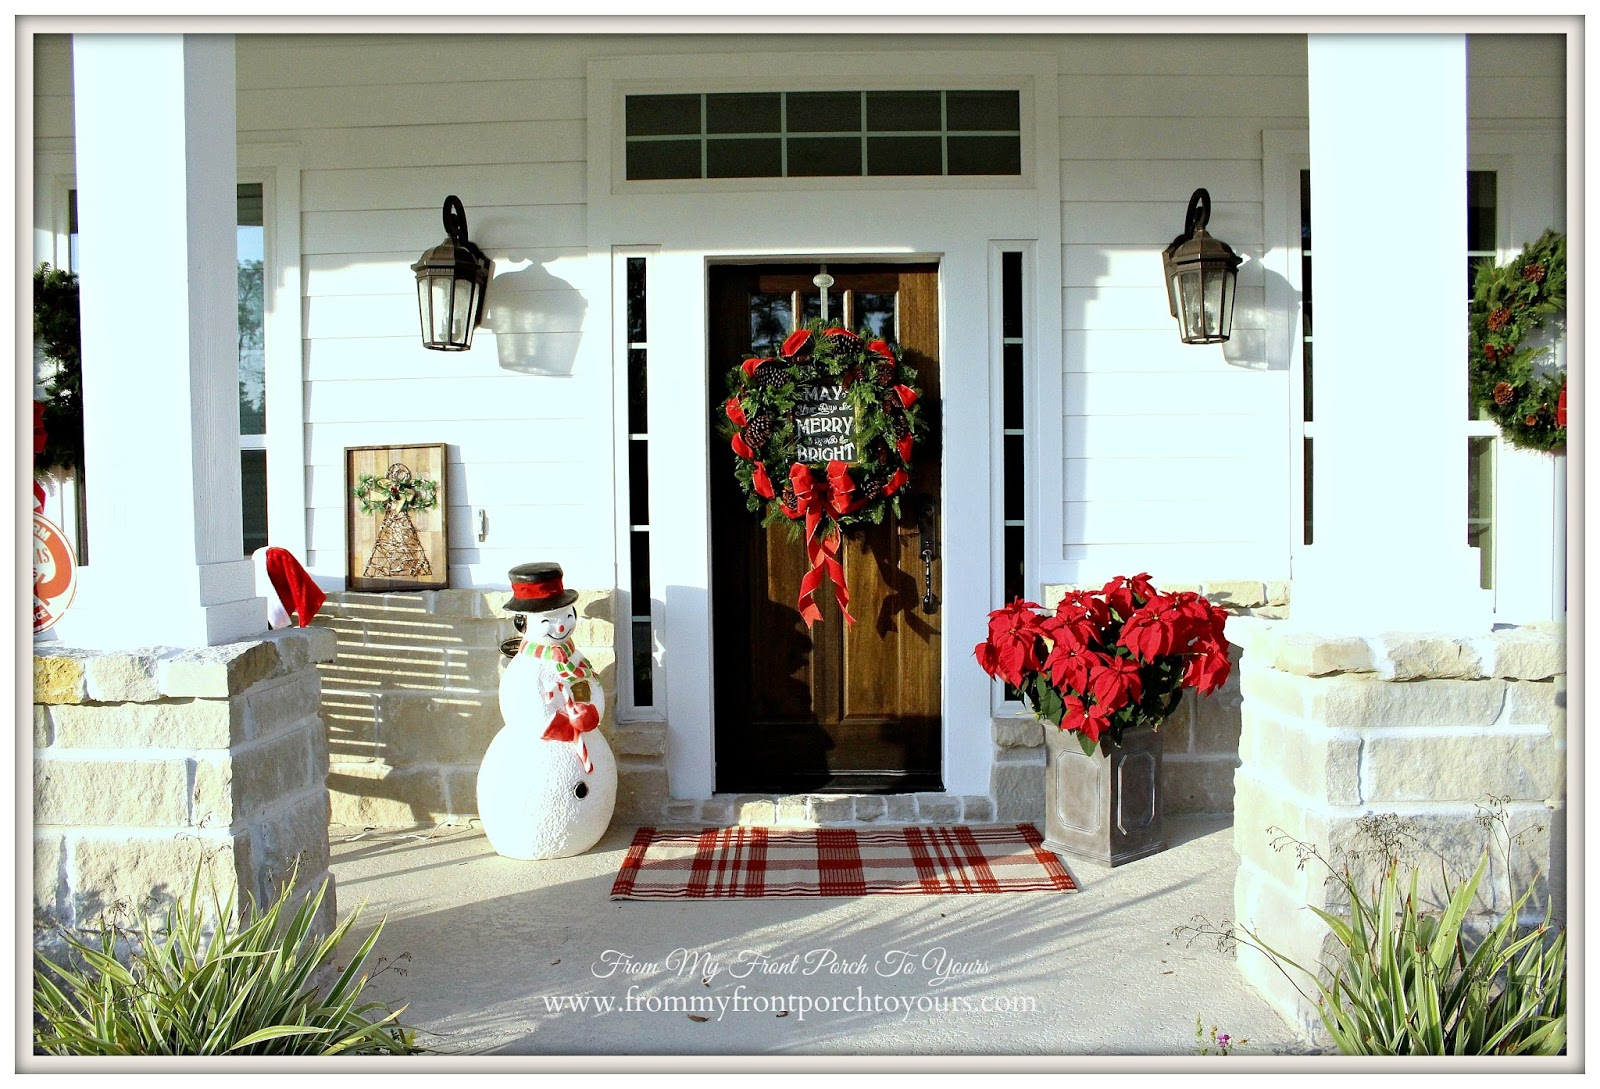 From My Front Porch To Yours: Farmhouse Christmas Porch 2016